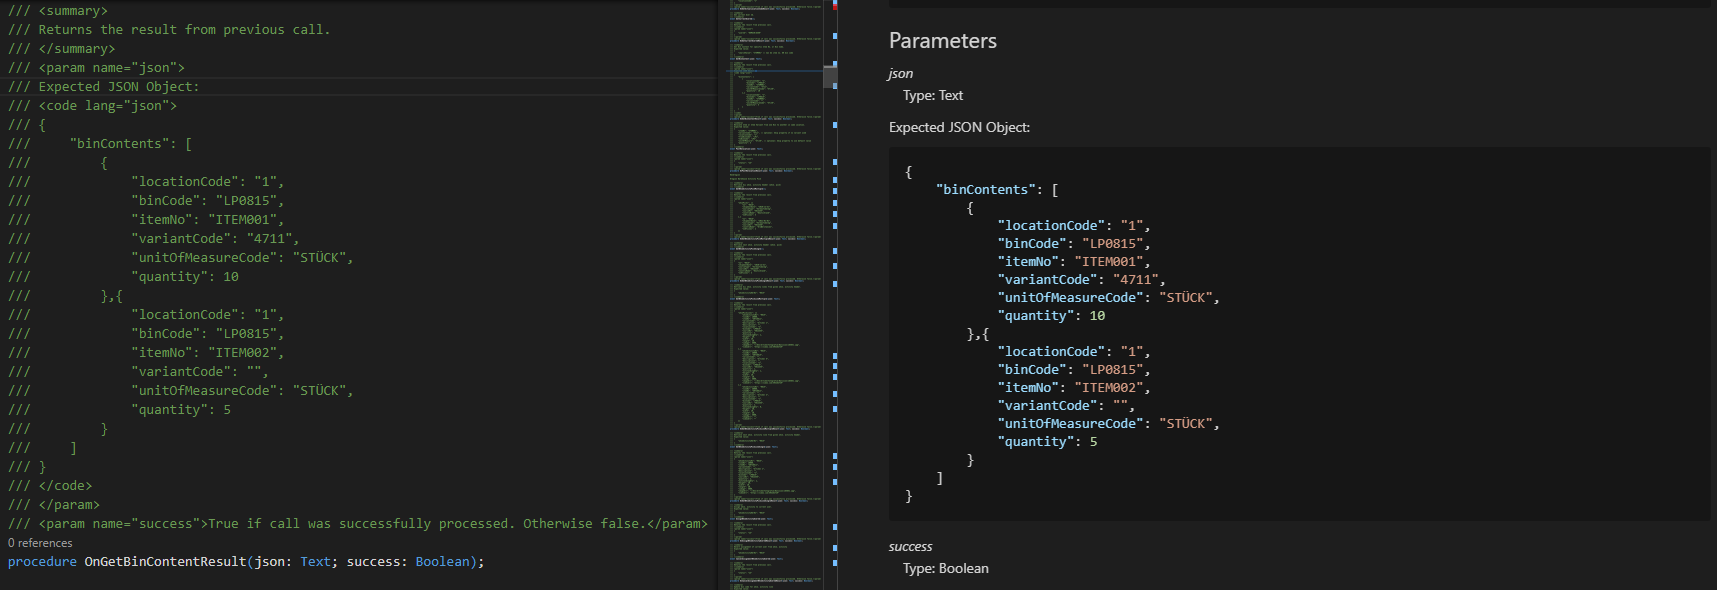 Use code-tag in Summary or Parameter description to explain usage